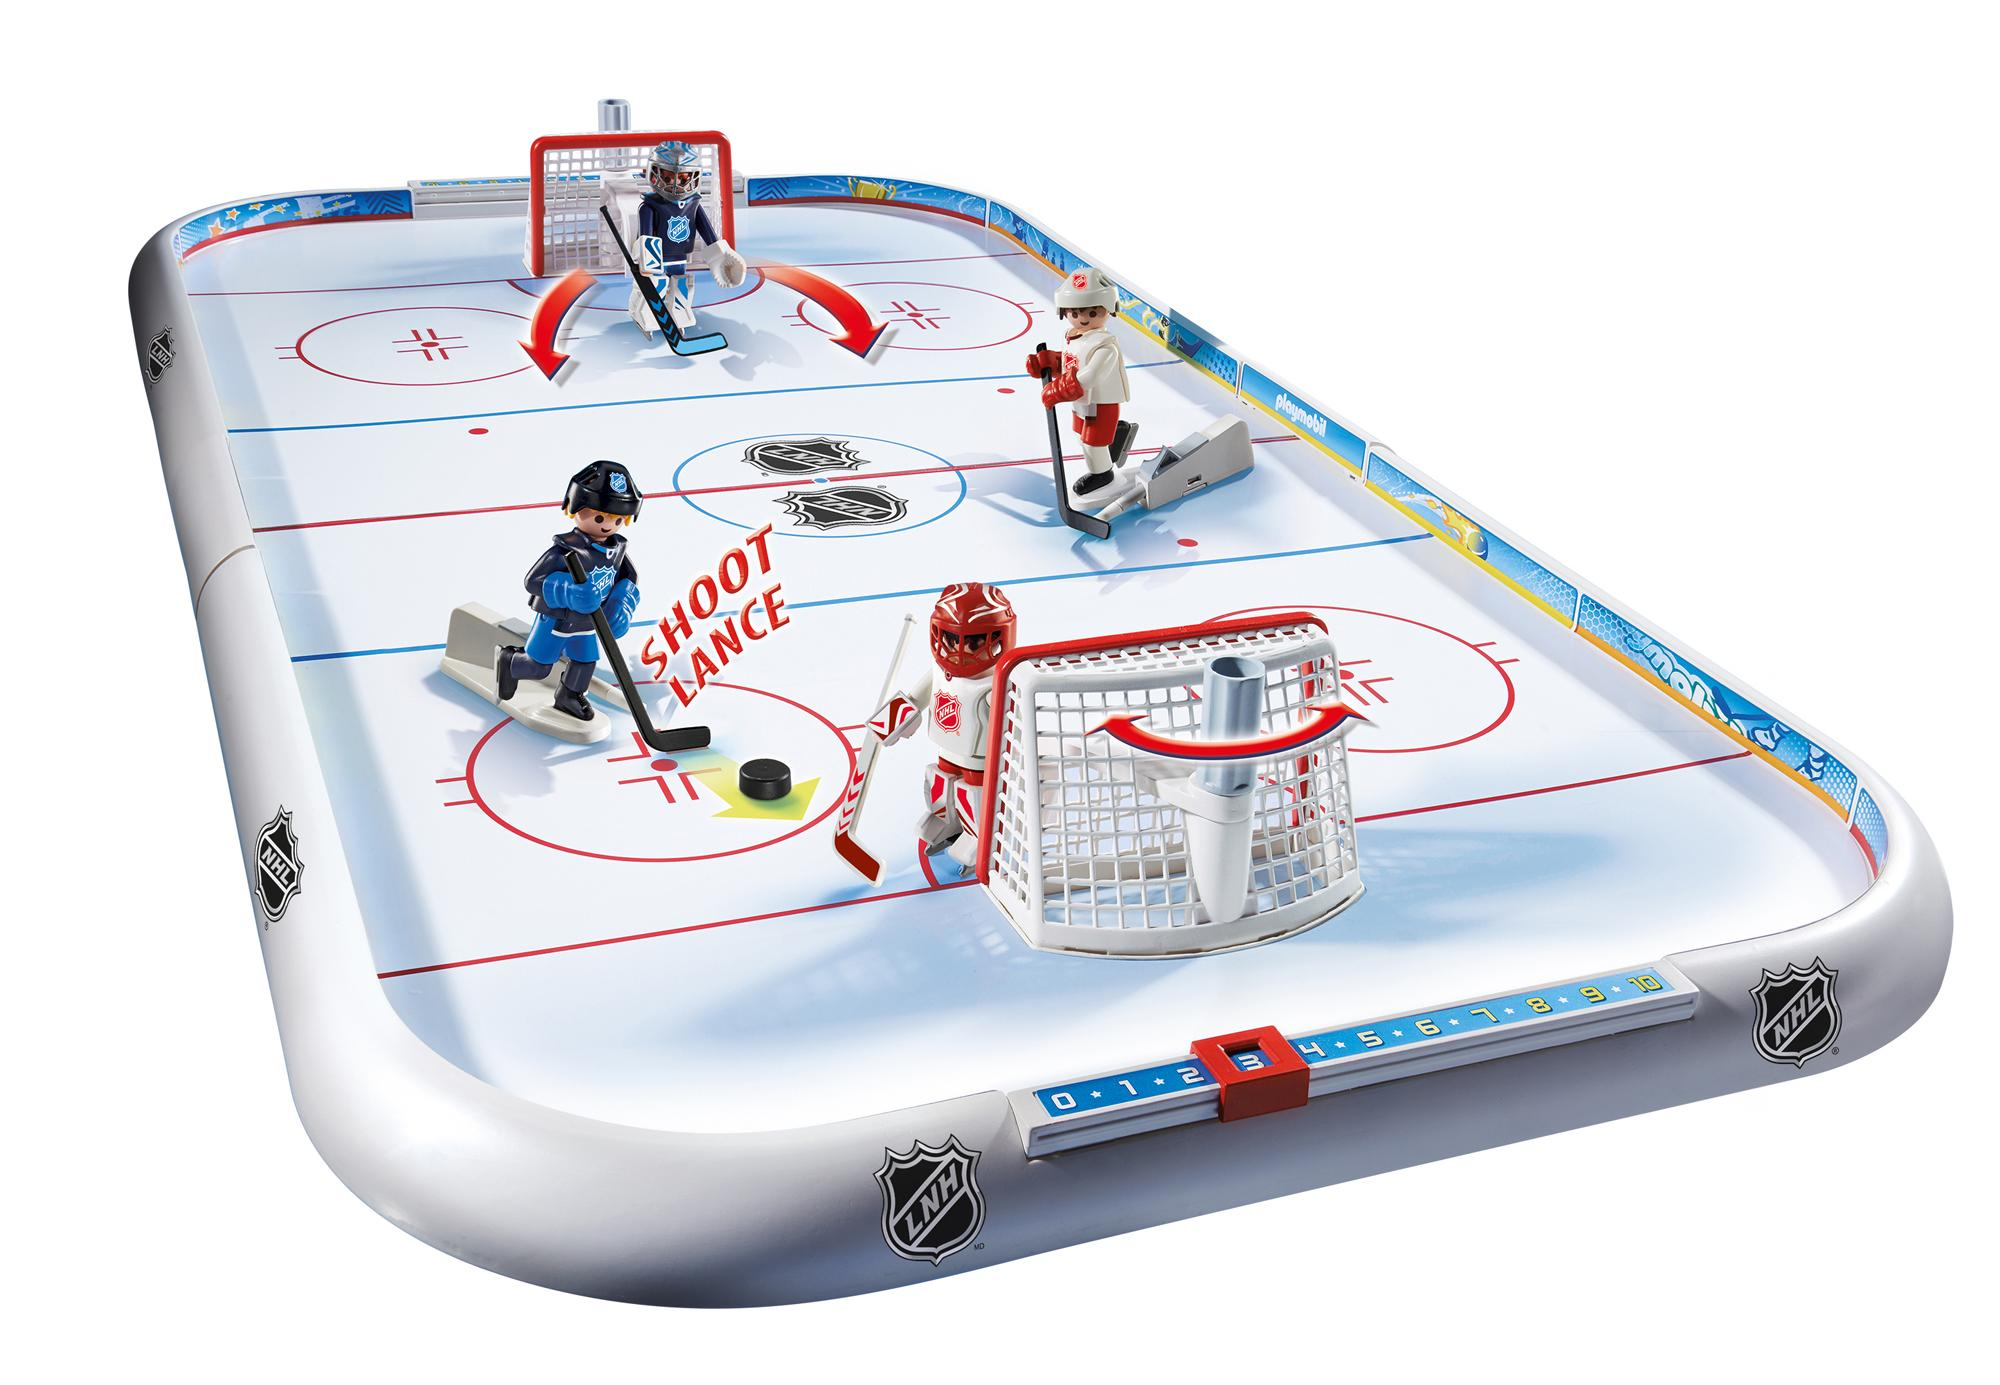 Toys And Games For Boys : Amazon playmobil nhl hockey arena toys games